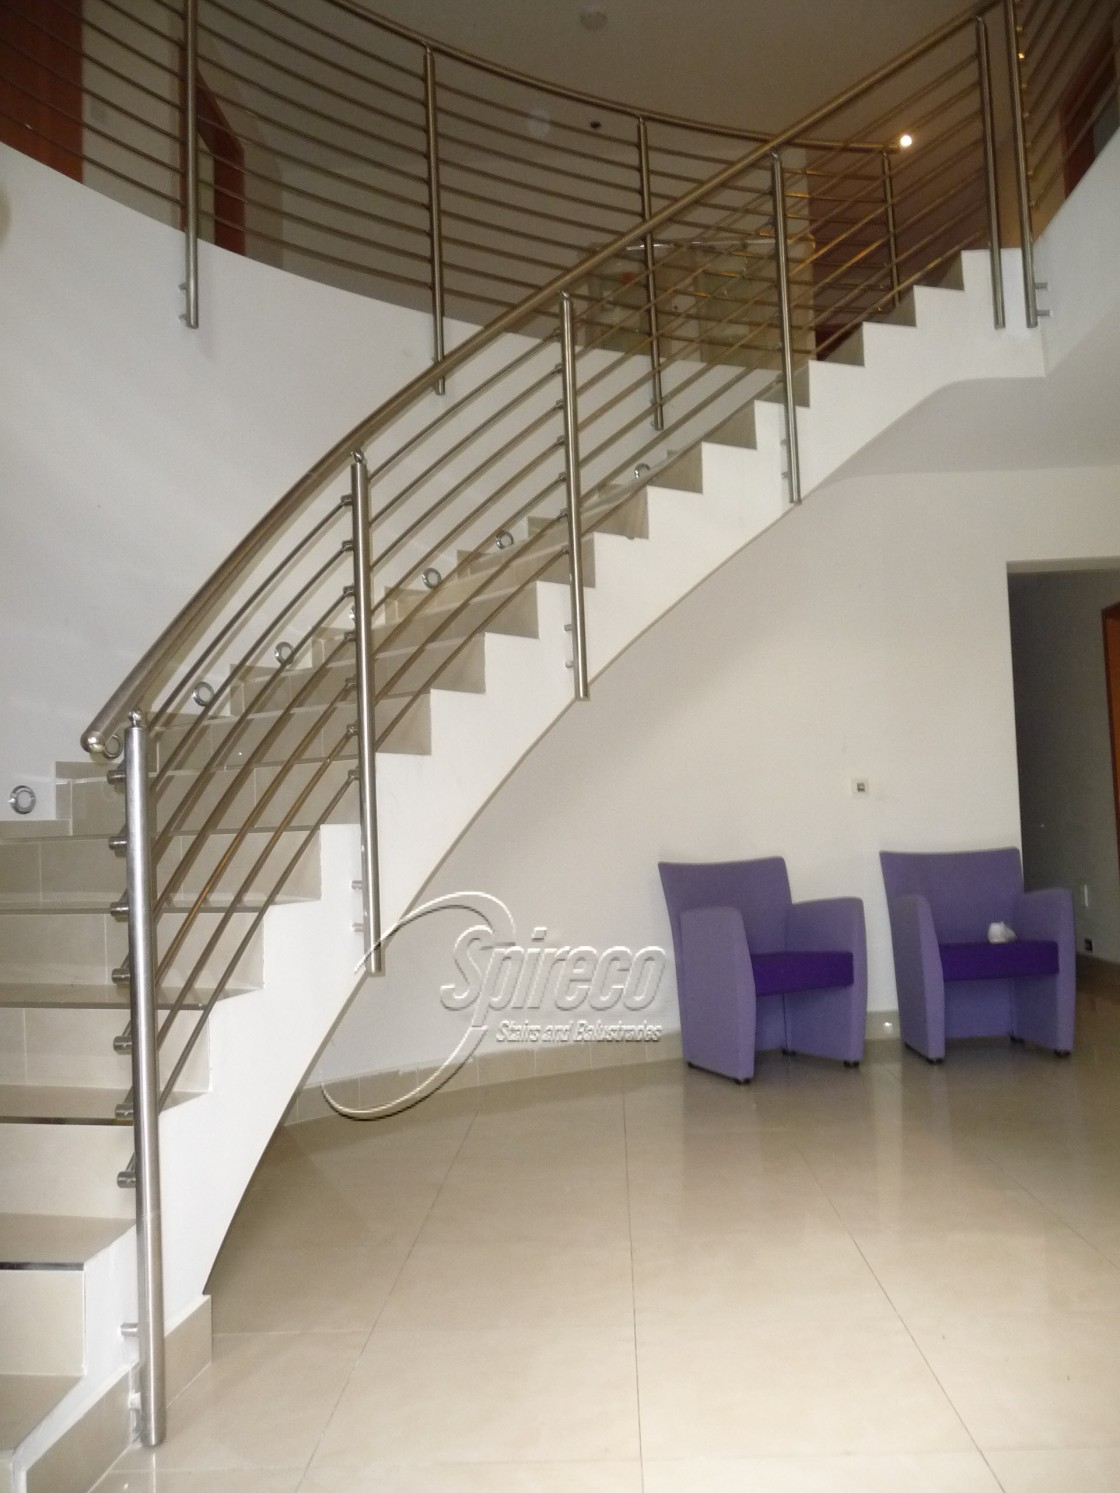 Curved Stairs Amp Balustrades Spireco Spiral Stairs